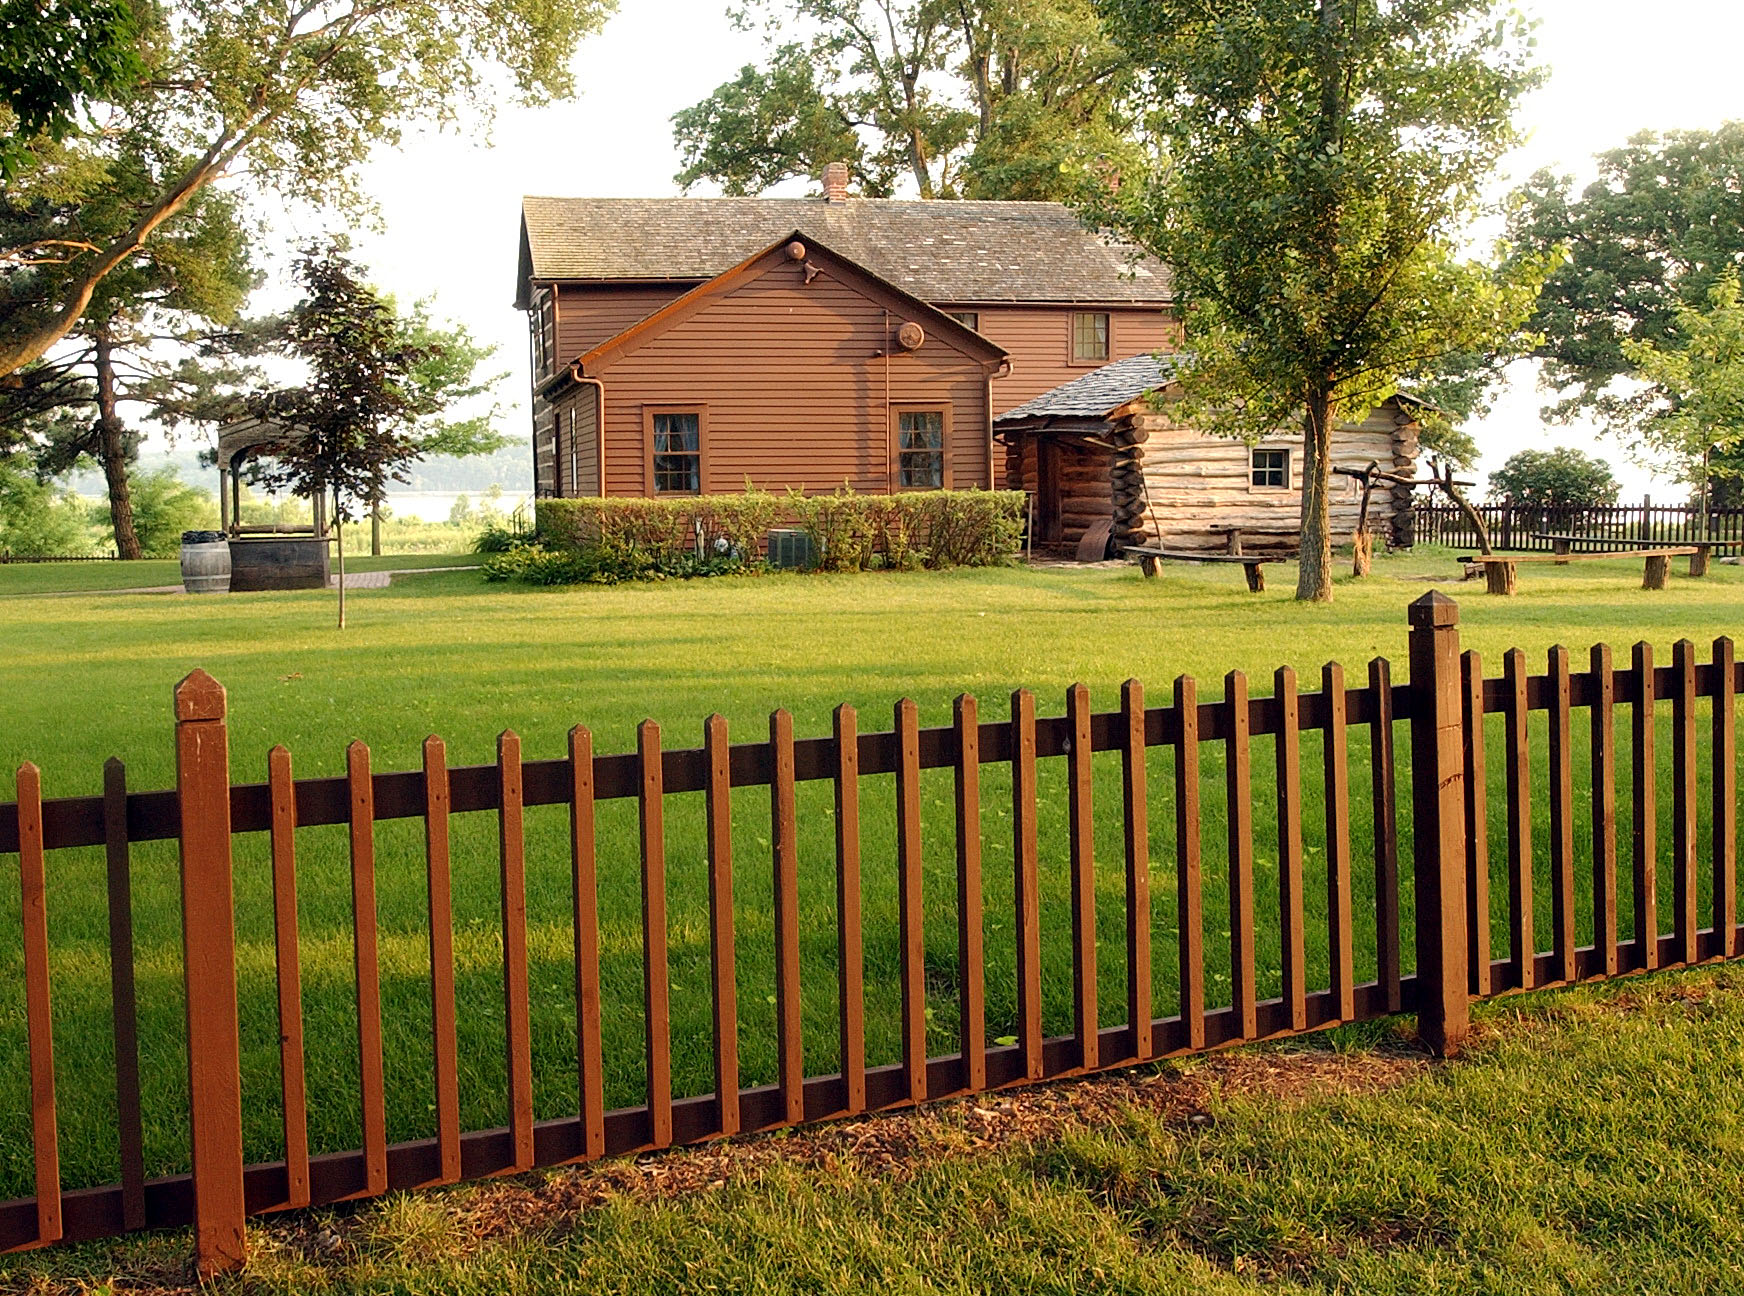 The Joseph Smith homestead June 2002.